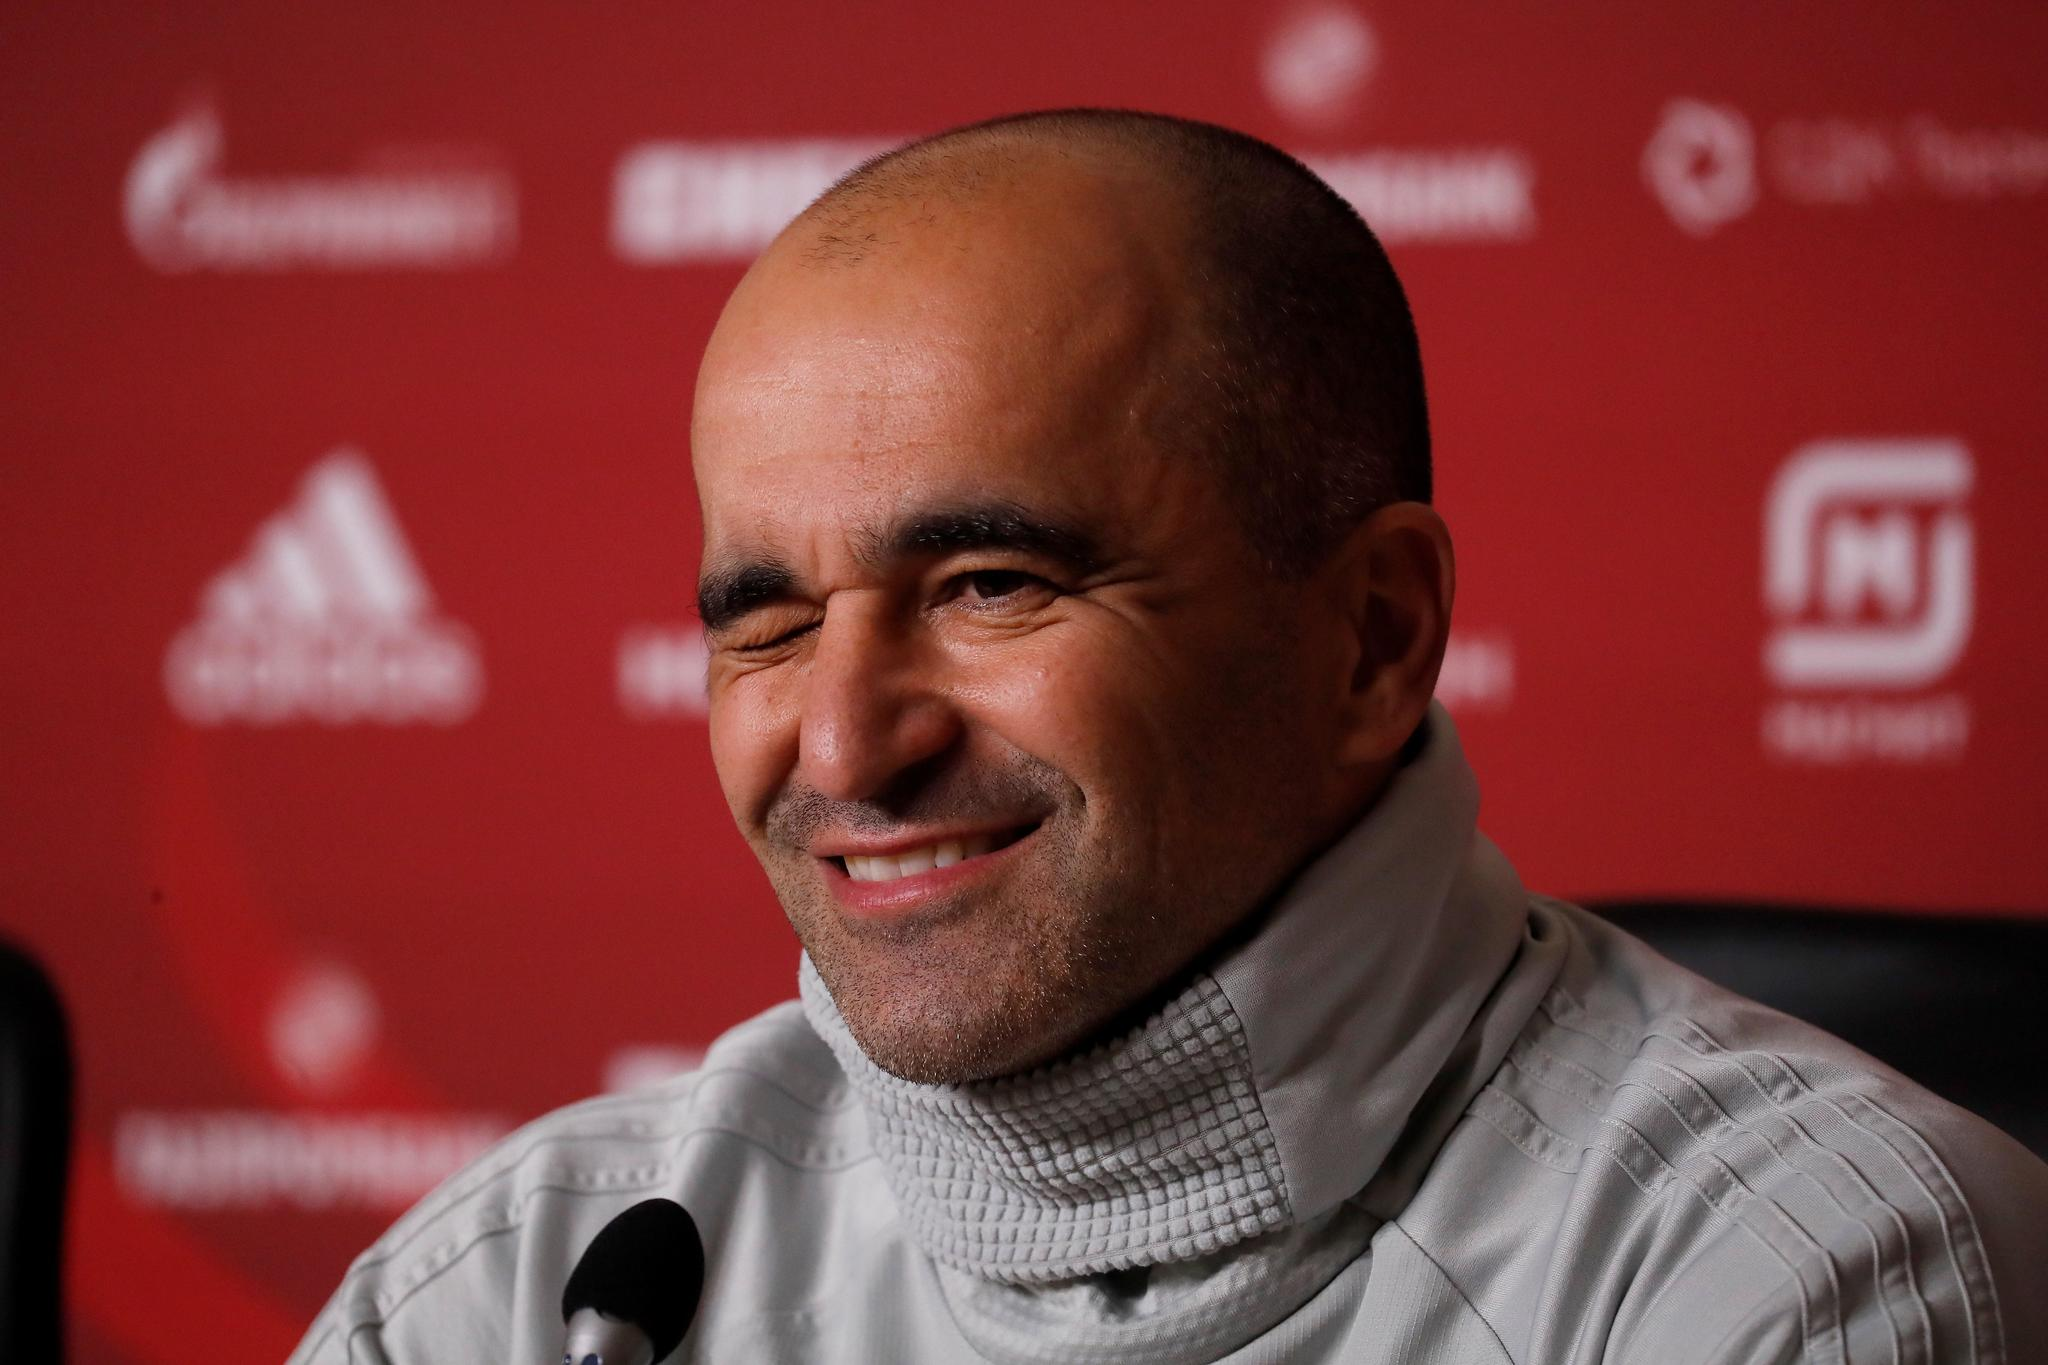 St. Petersburg (Russian Federation), 15/11/2019.- Belgium head coach <HIT>Roberto</HIT><HIT>Martinez</HIT> attends a press conference at the Gazprom Arena in St. Petersburg, Russia, 15 November 2019. Belgium will face Russia in their UEFA Euro 2020 Group I qualifying soccer match on 16 November 2019. (Bélgica, Rusia, San Petersburgo) EFE/EPA/ANATOLY MALTSEV